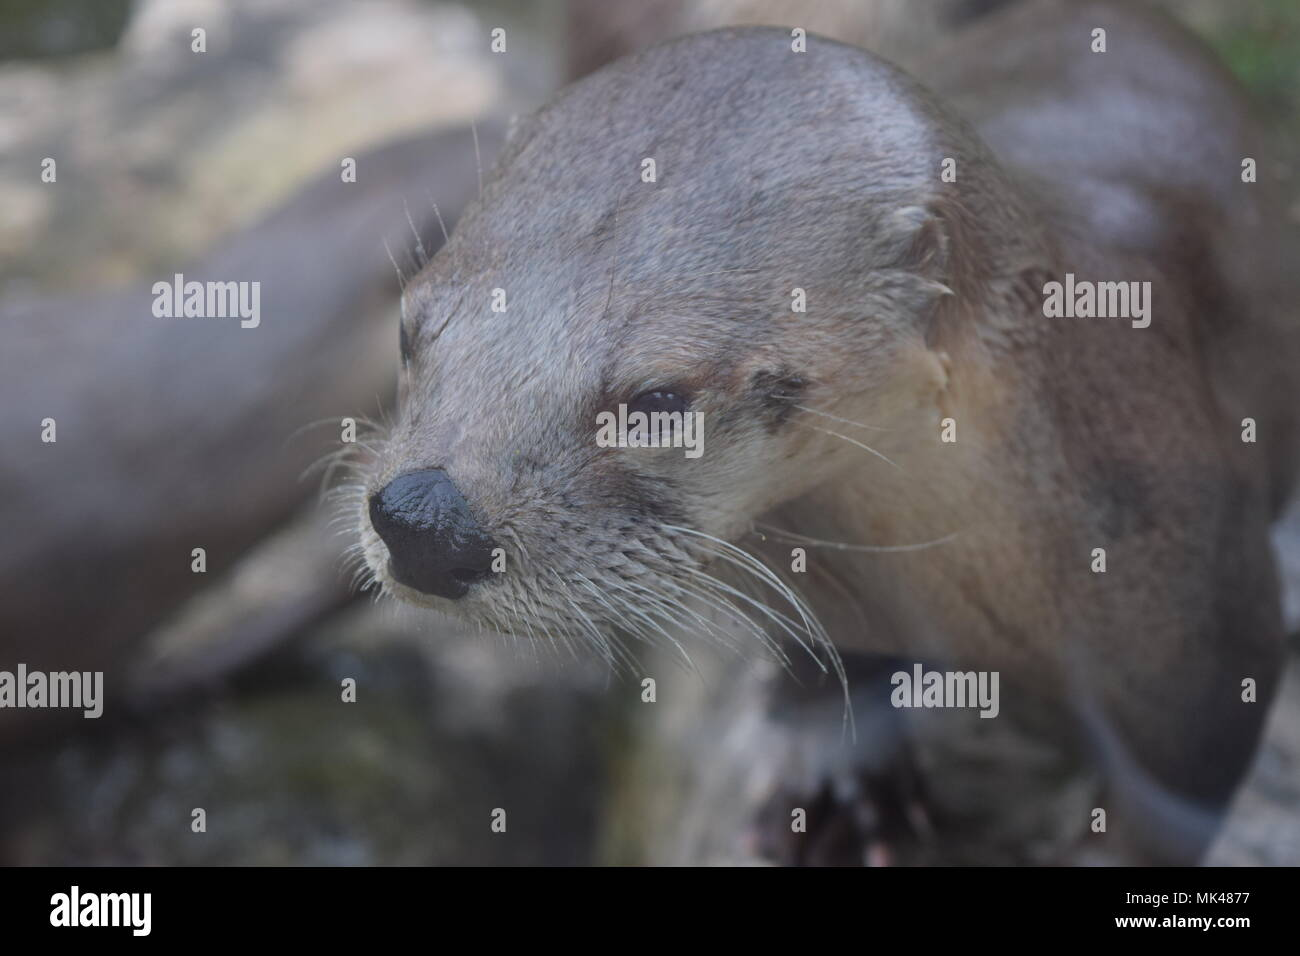 Otter family on side of the water - Stock Image